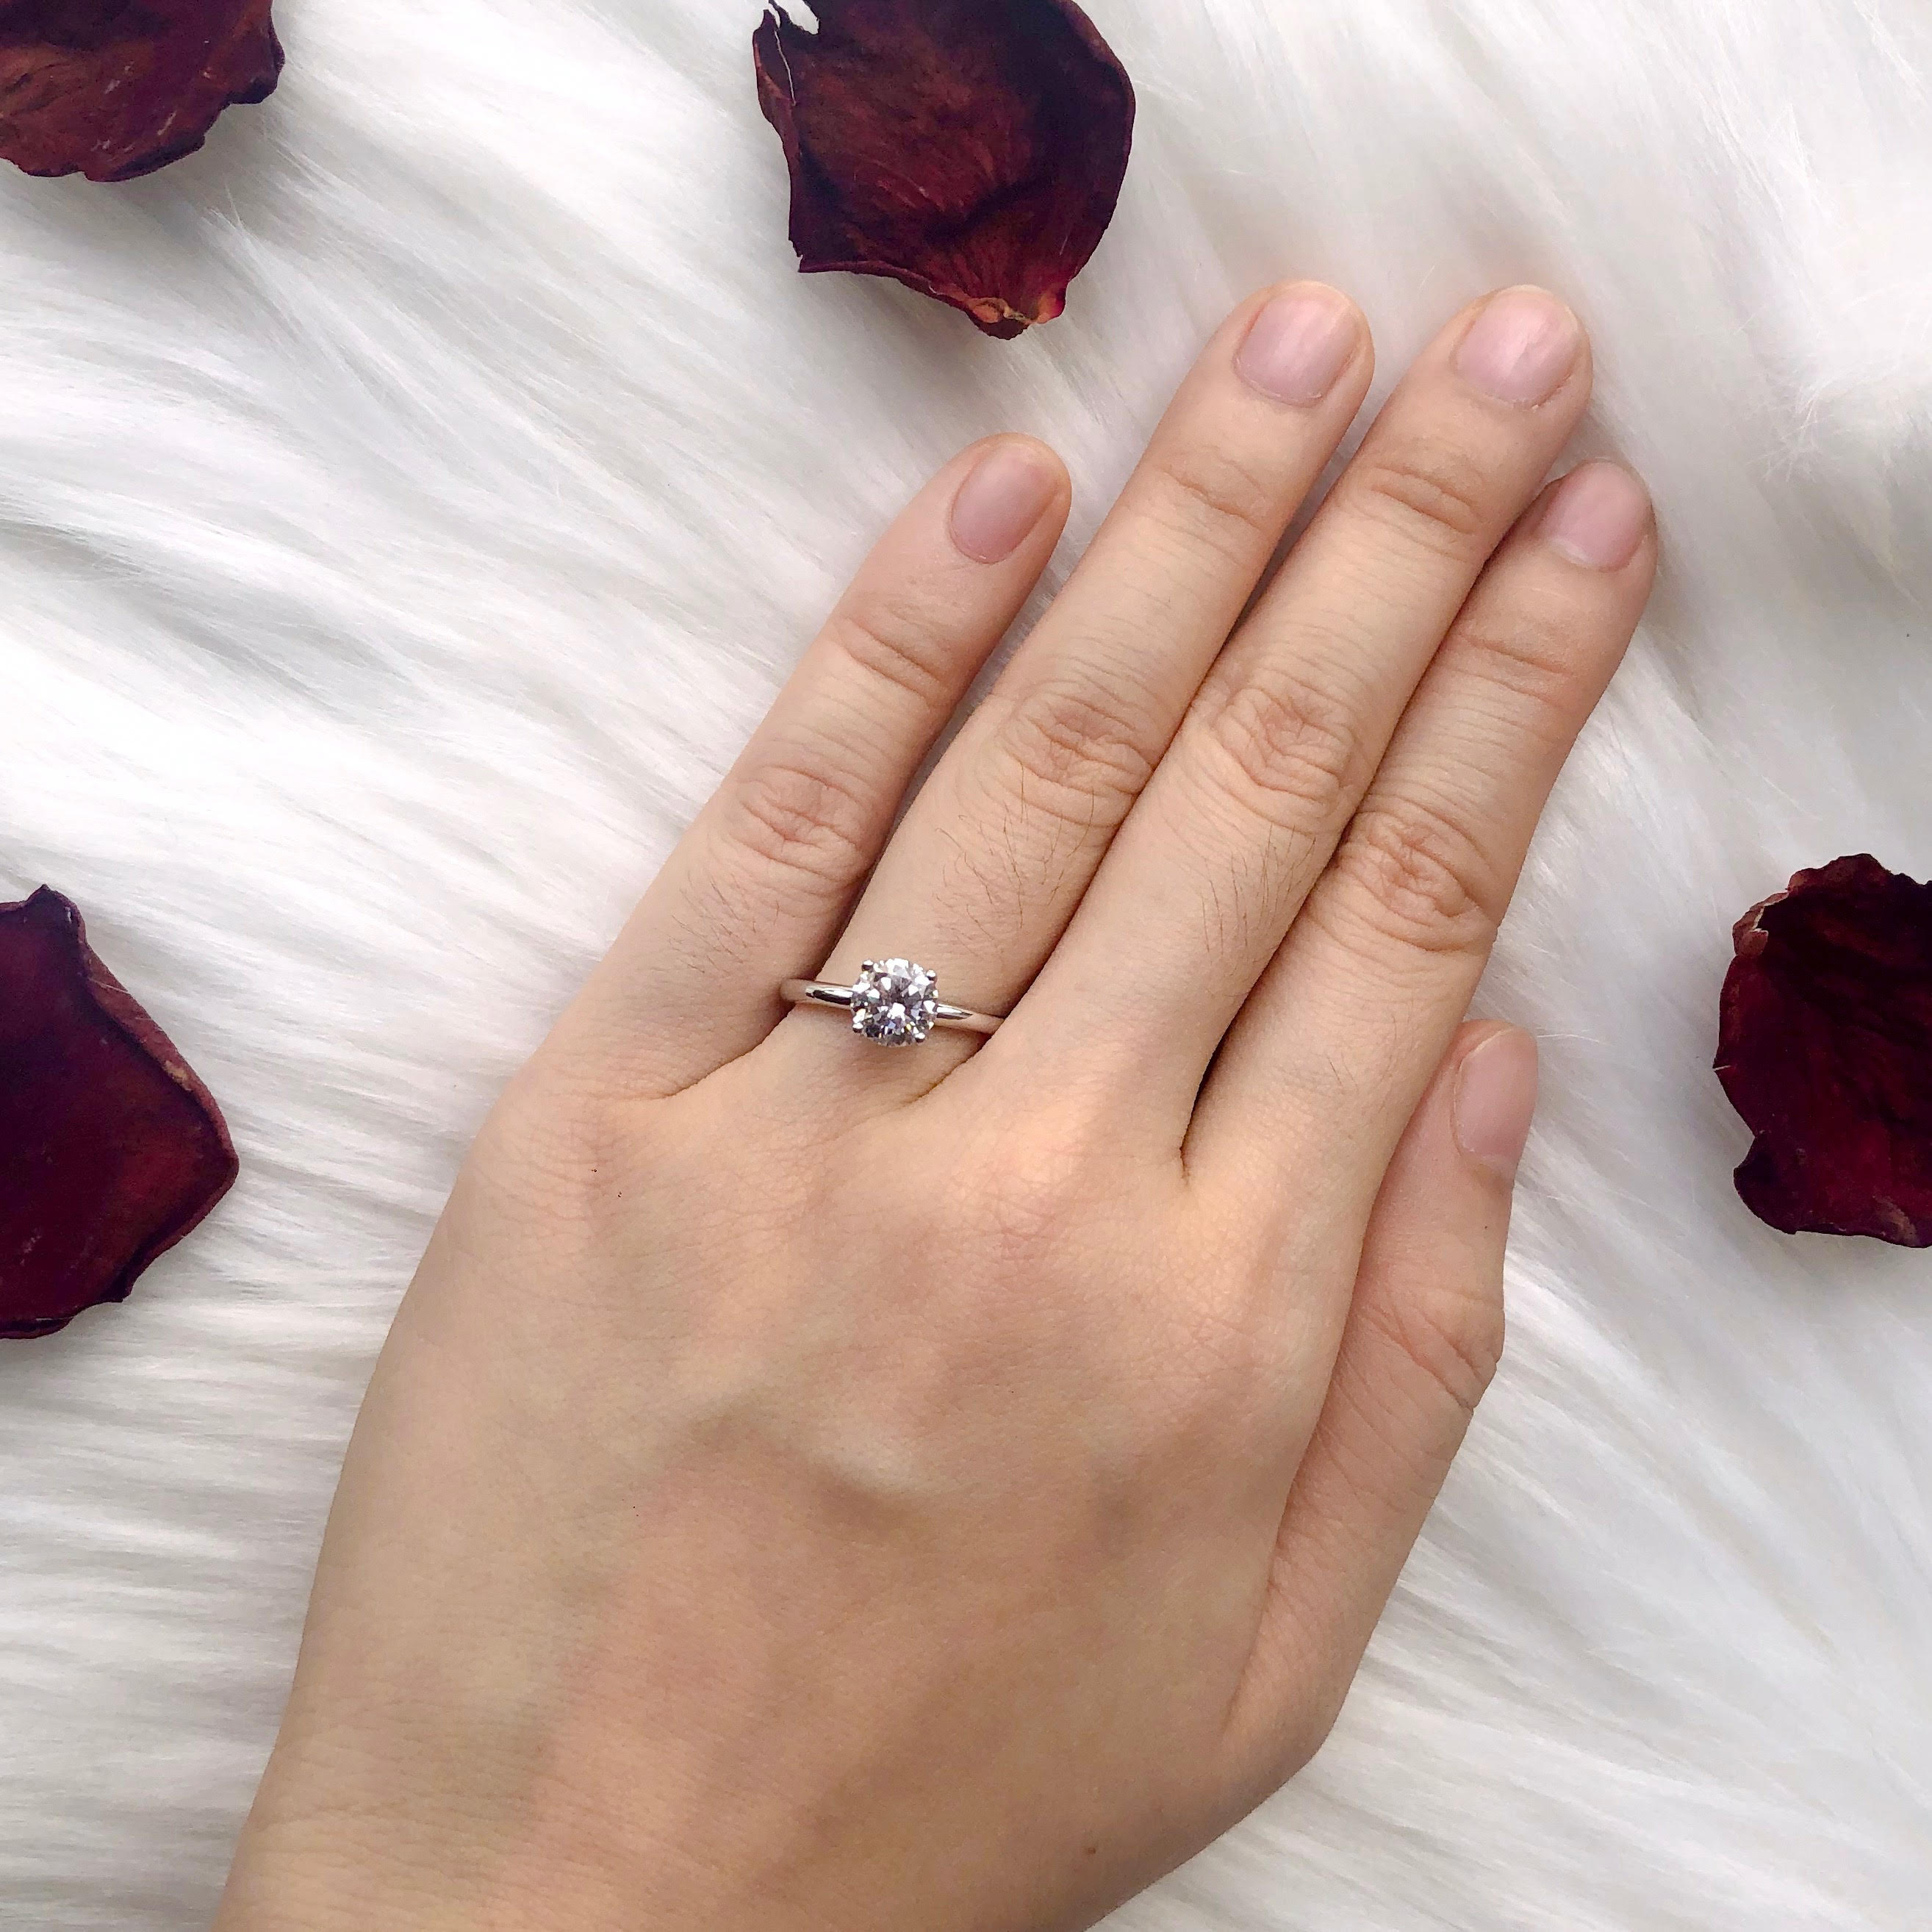 taking photo of engagement ring with rose background